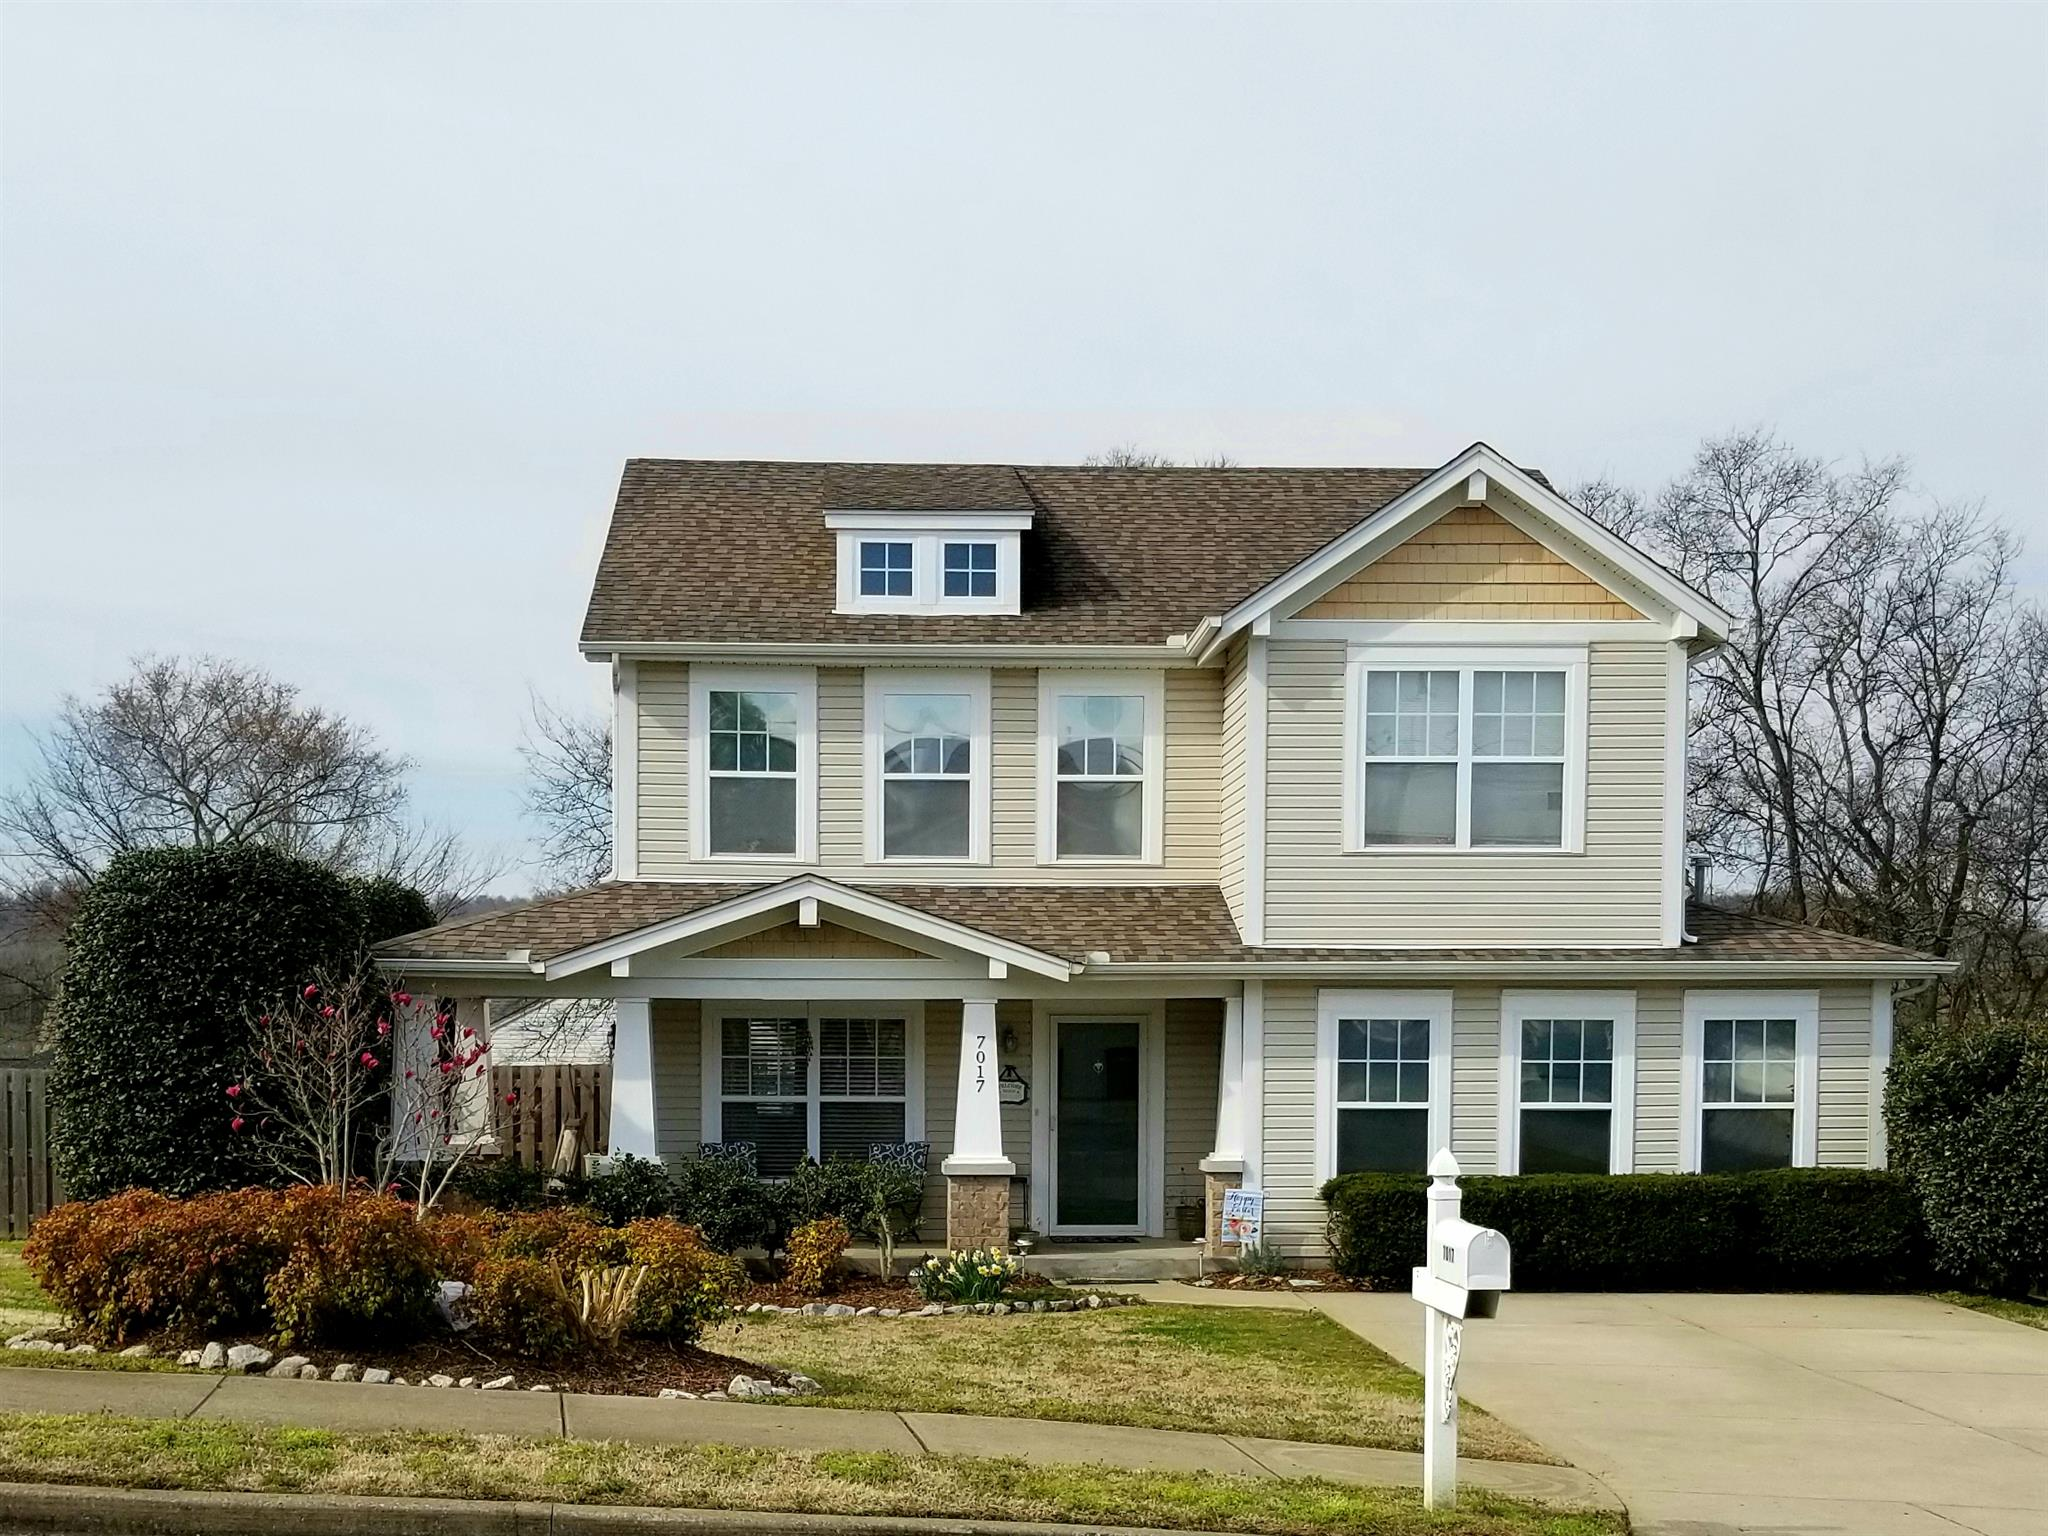 7017 Lexington Point Dr, Bellevue in Davidson County County, TN 37221 Home for Sale